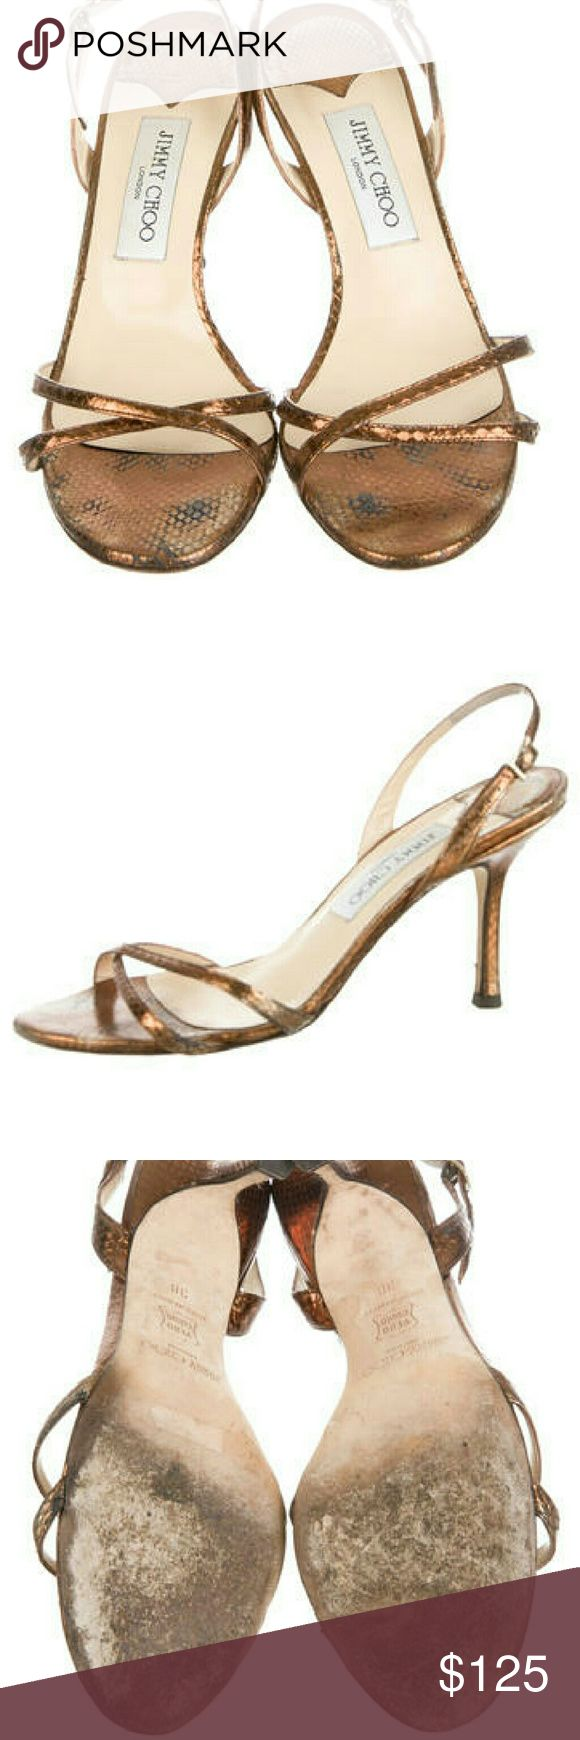 Jimmy Choo Metallic leather Heels sz 8 Gorgeous pair of strappy leather sling back high heels from Jimmy Choo. A bronze-gold metallic sheen, in great condition.  The heel hight is about 3.5 inches. Very good condition with some scuffing on the soles. Jimmy Choo Shoes Heels